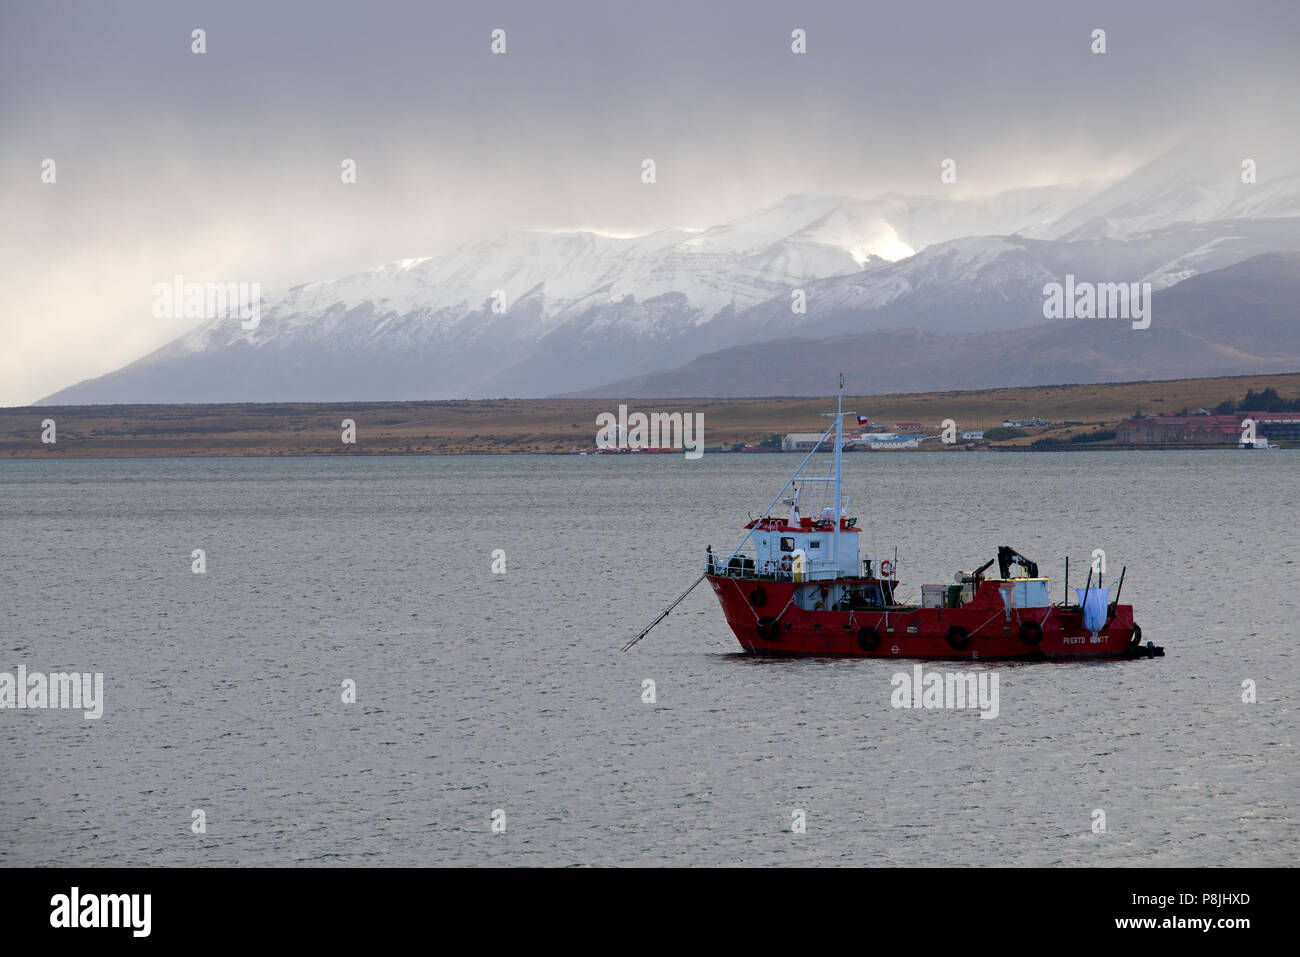 Fishing boat anchored in the waters of the Last Hope Sound, near the fishing port of Puerto Natales, in southern Chile. Stock Photo